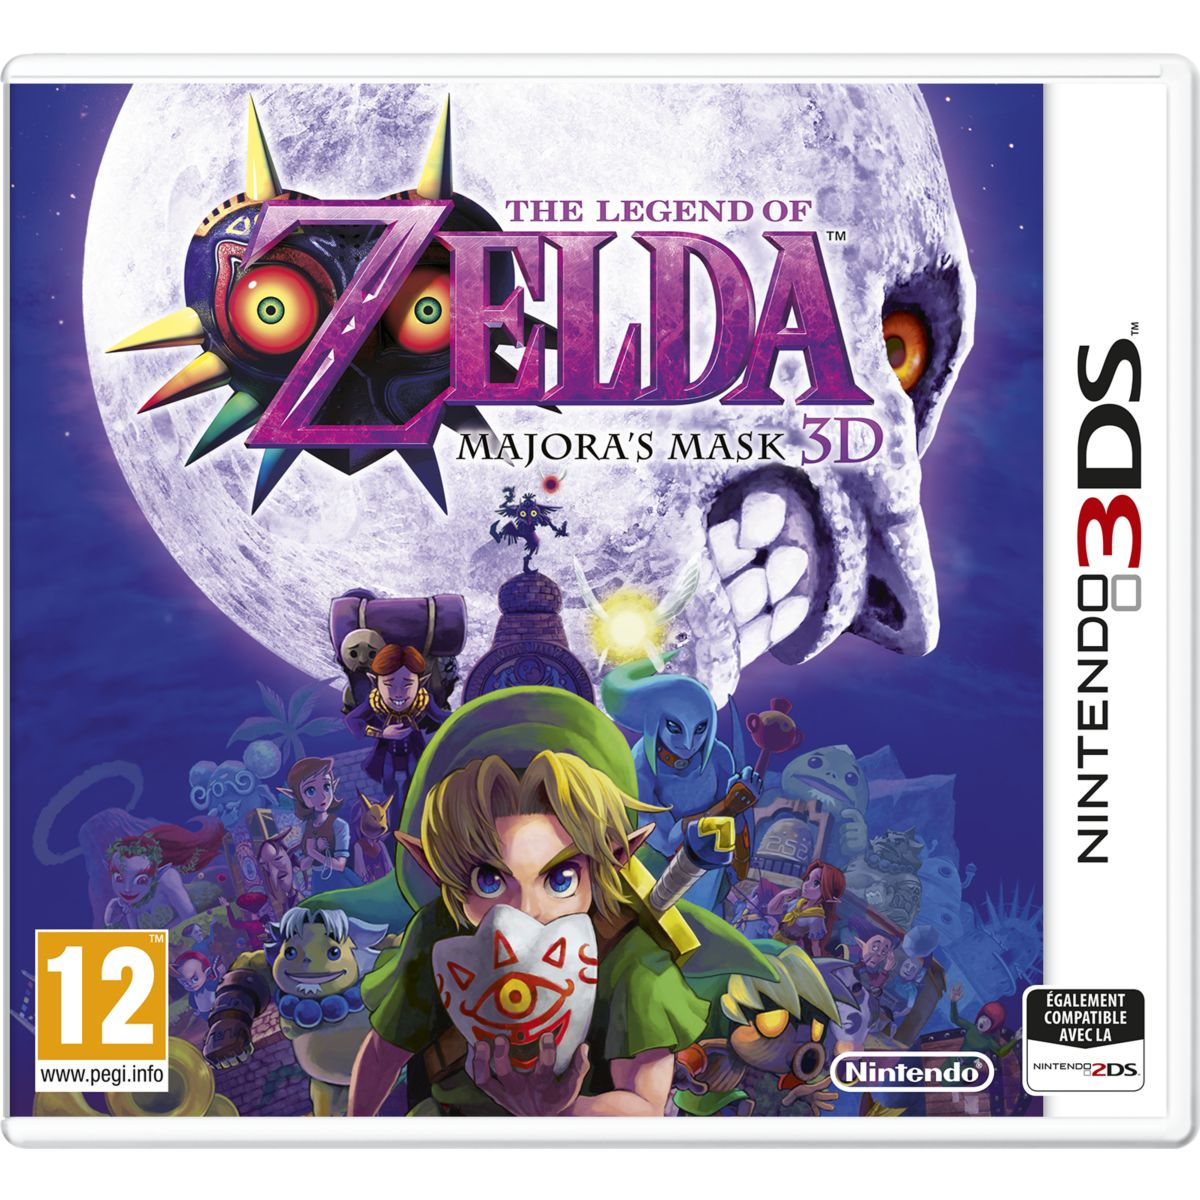 Jeu 3ds nintendo the legend of zelda majora's mask - 2% de remise immédiate avec le code : cool2 (photo)